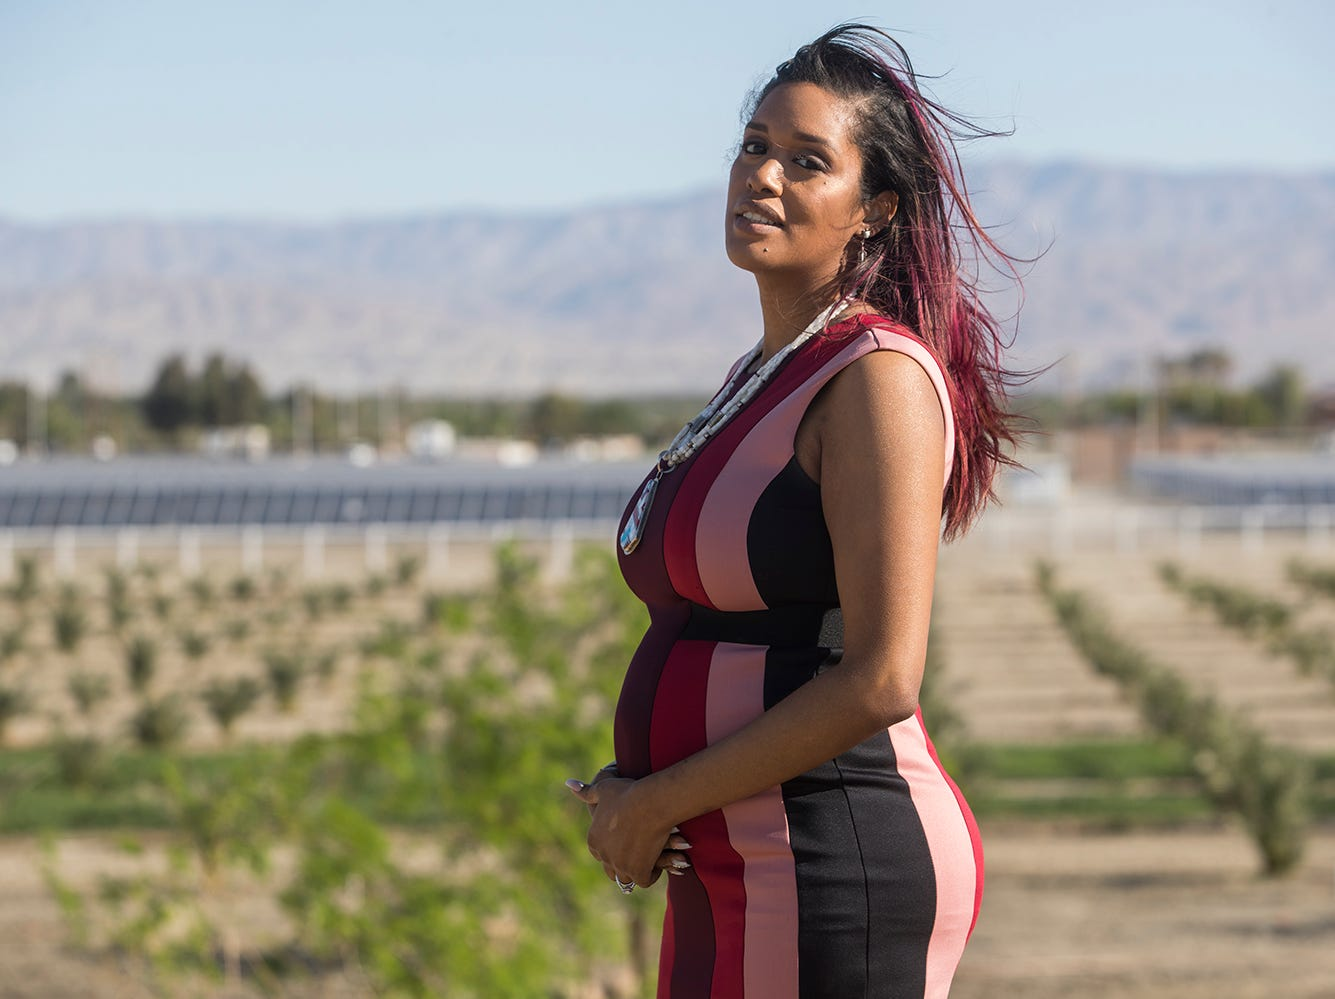 Amanda Vance, the 32-year-old tribal chairof the Augustine Band of Cahuilla Indians is photographed on the reservation in late March 2019.